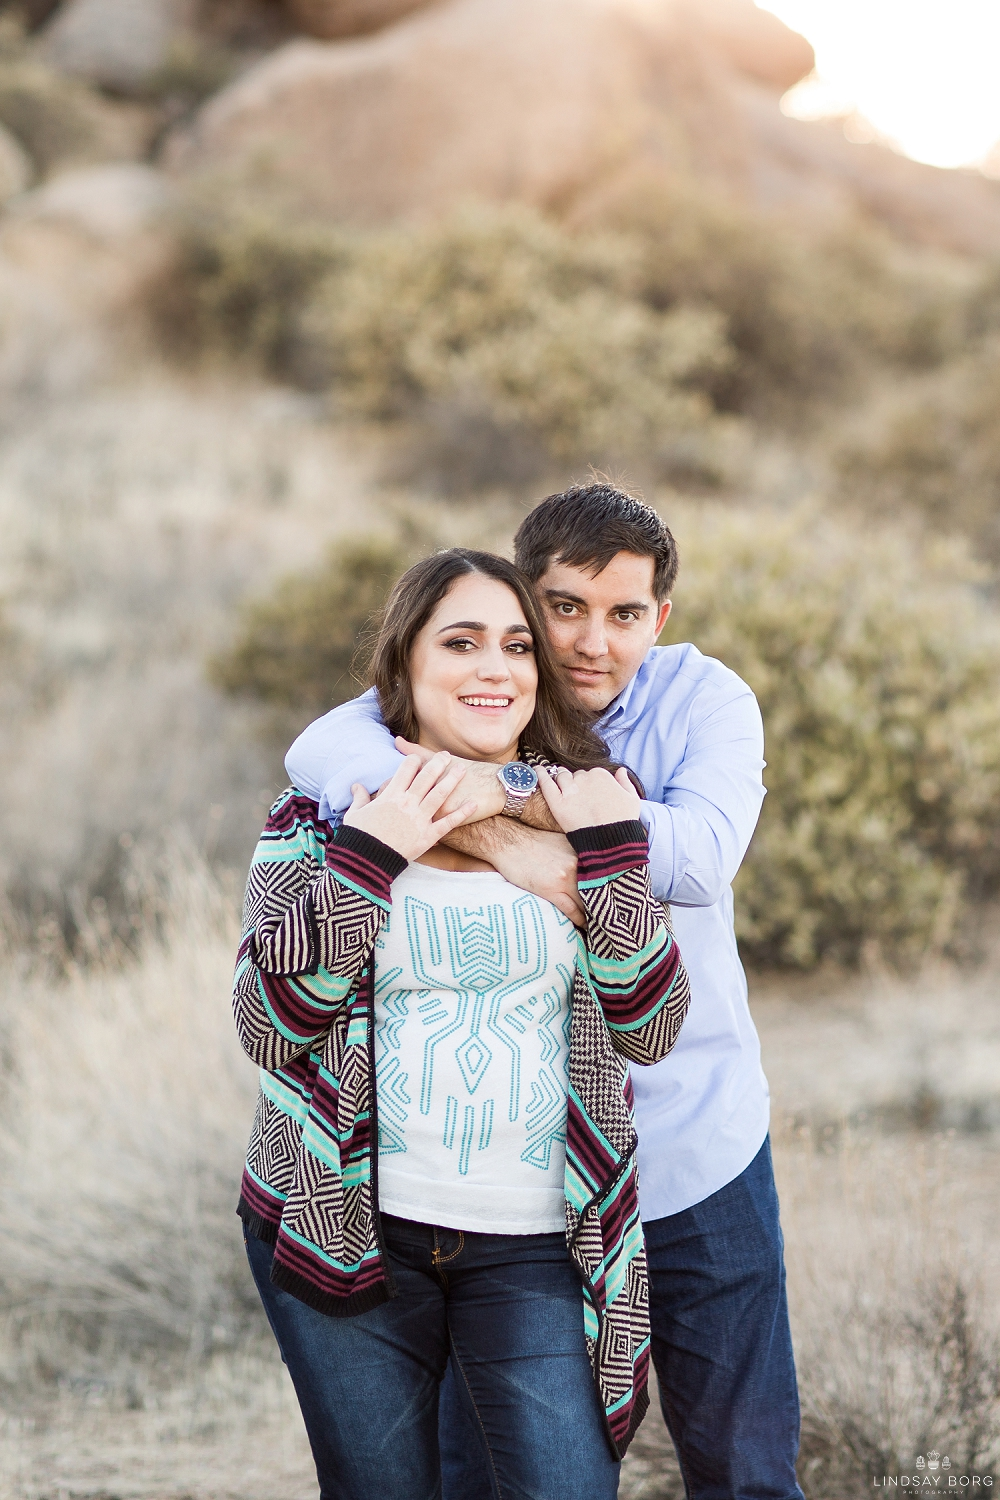 Lindsay-Borg-Photography-arizona-senior-wedding-portrait-photographer-az_2941.jpg